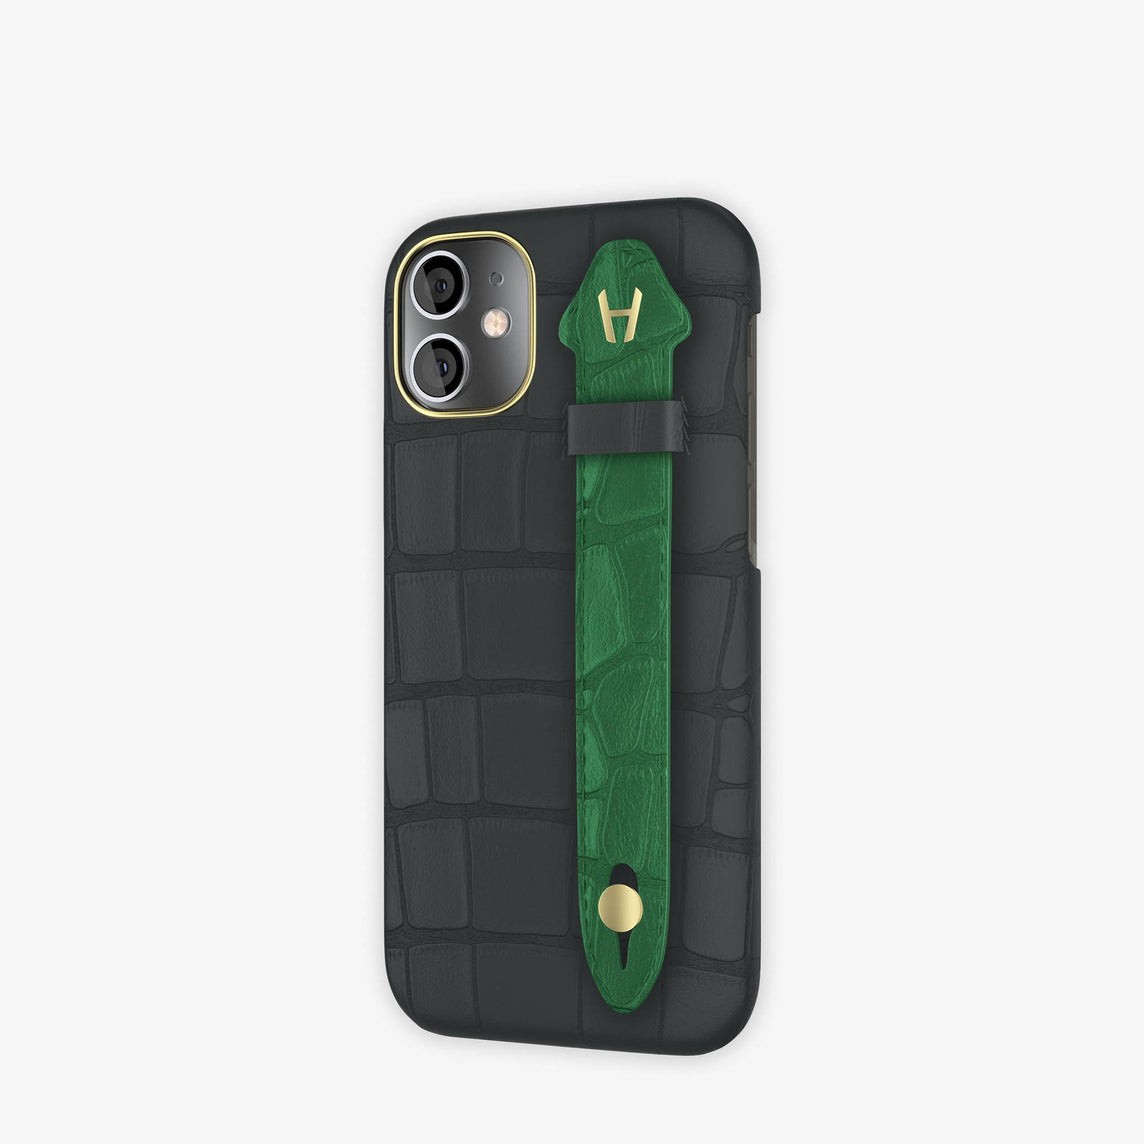 Alligator Side Finger Case iPhone 12 Mini | Anthracite/Green Emerald -Yellow Gold